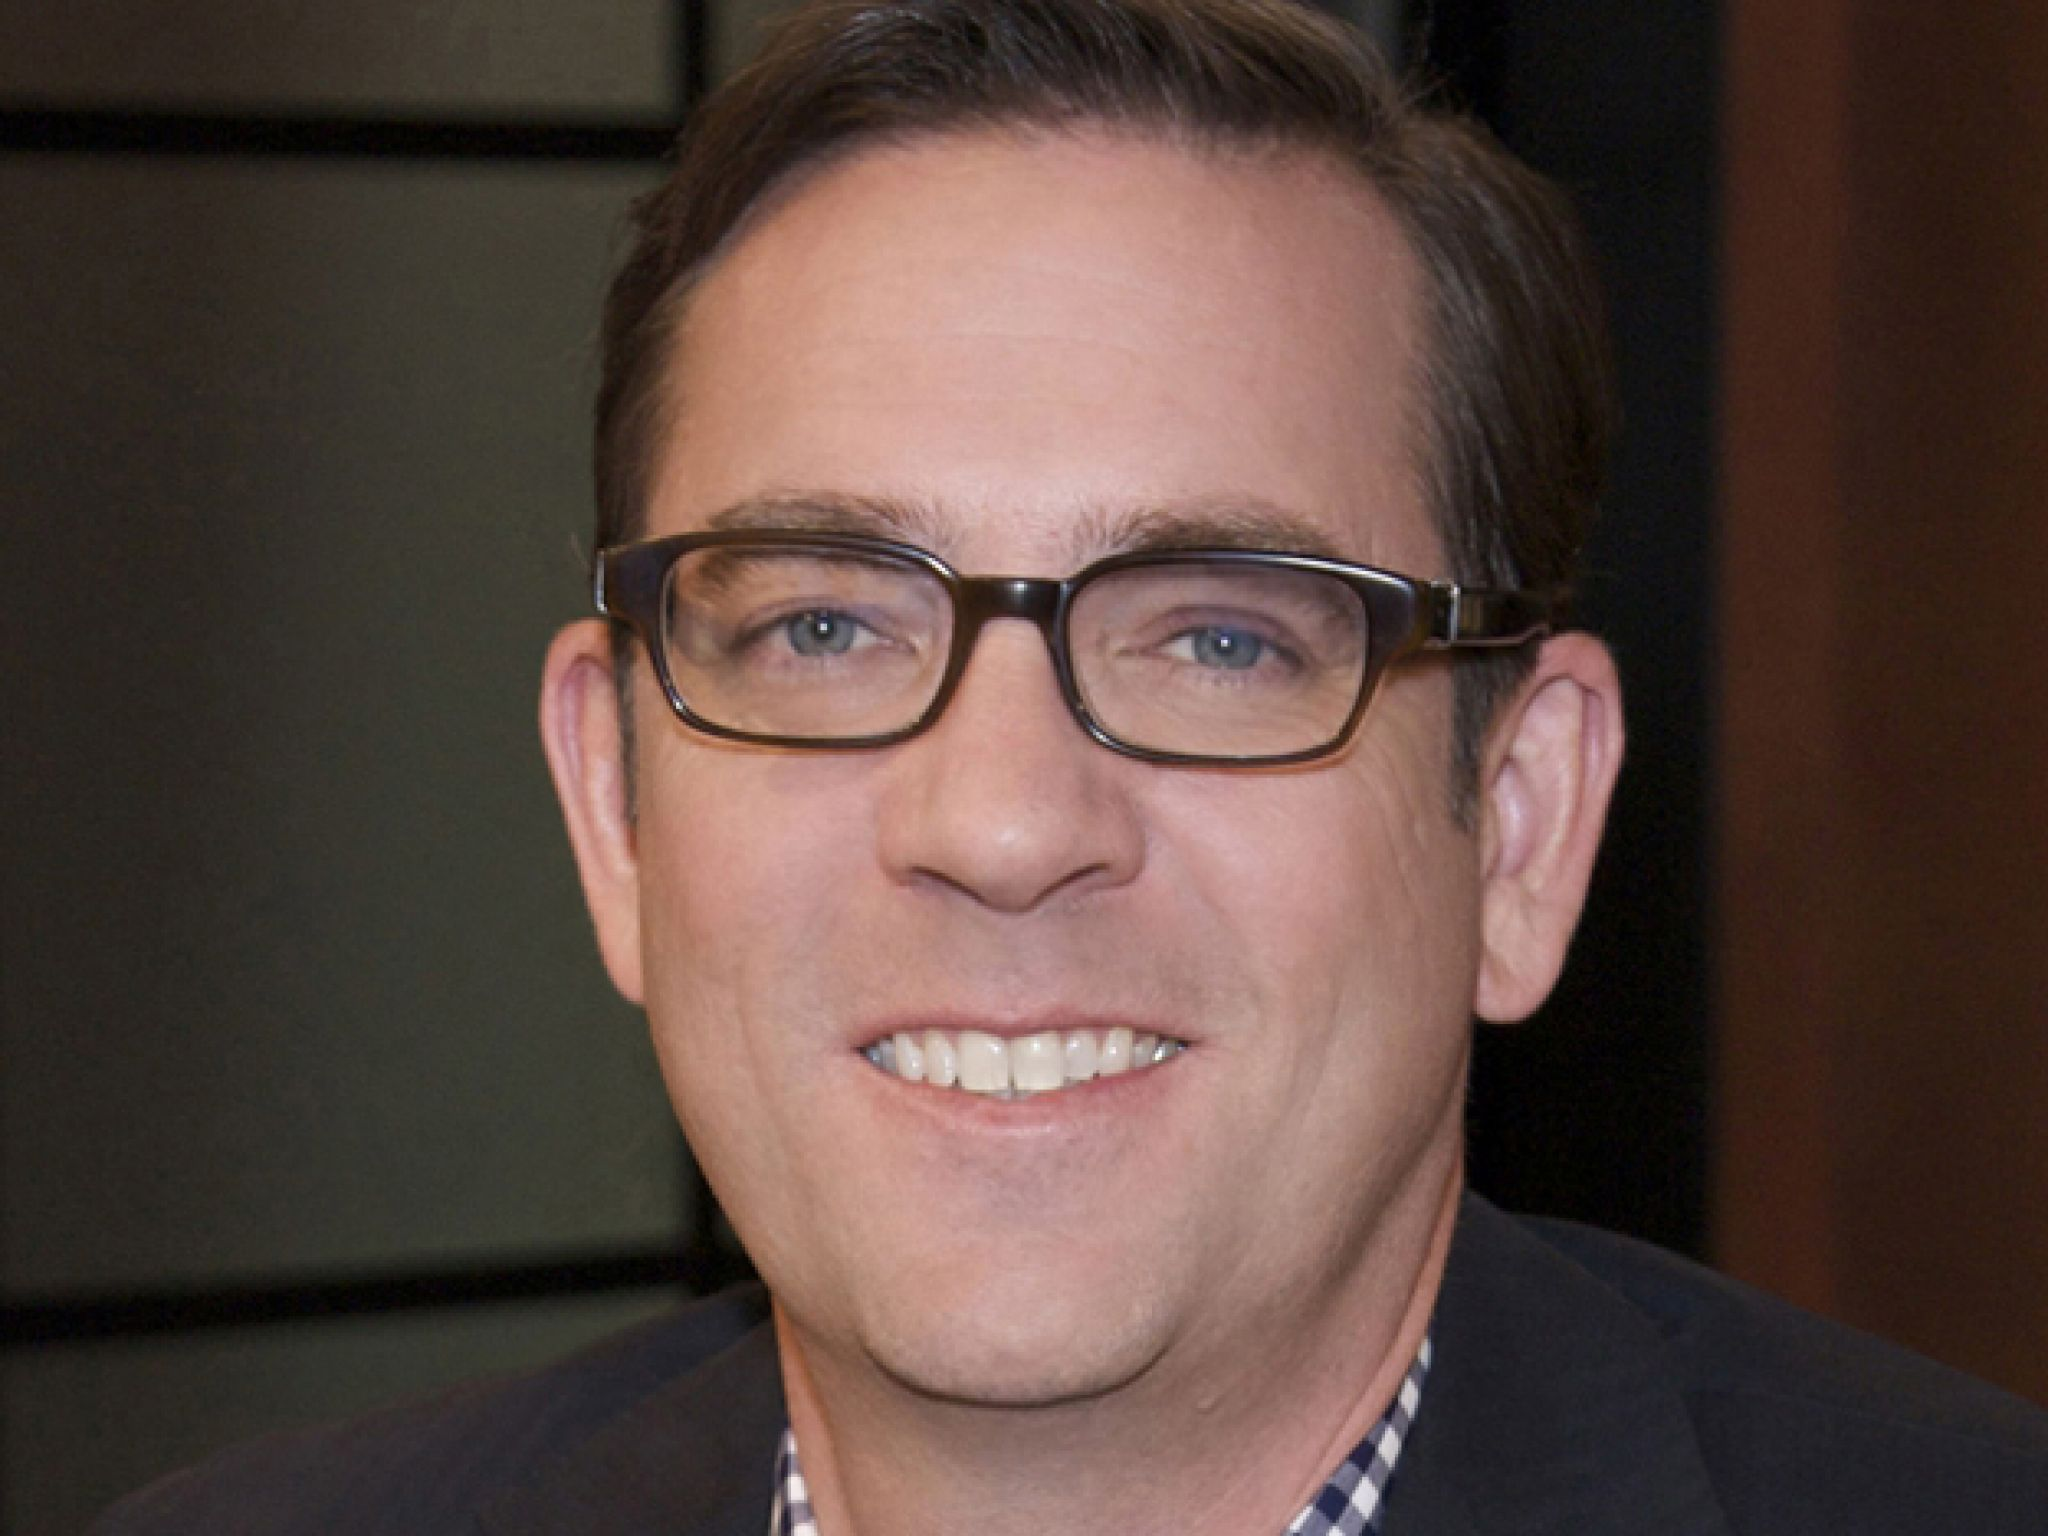 Ted allen food network foodnetwork ted allen pinterest recipes ted allen food network forumfinder Image collections